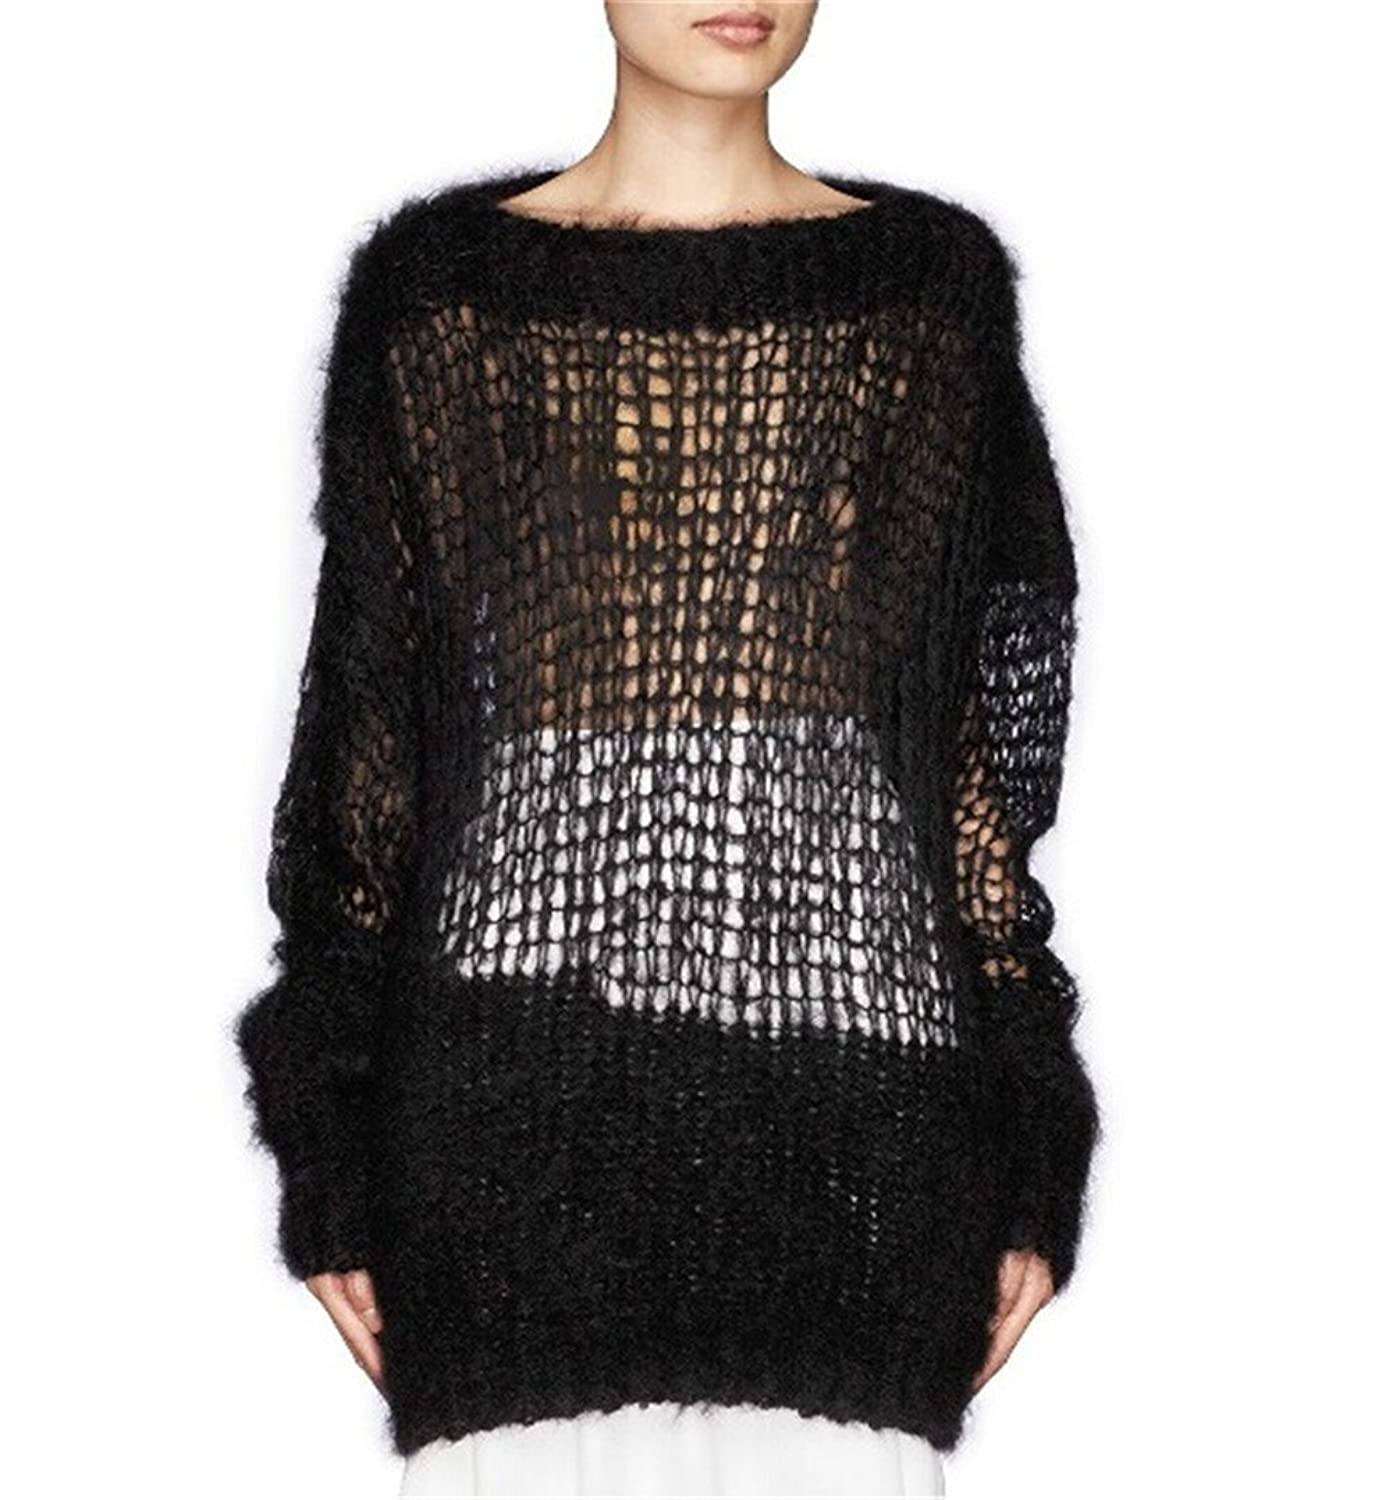 Crazy Women@@s Hollow Out Long Sleeve Knit Sweater Pullover Sweaters